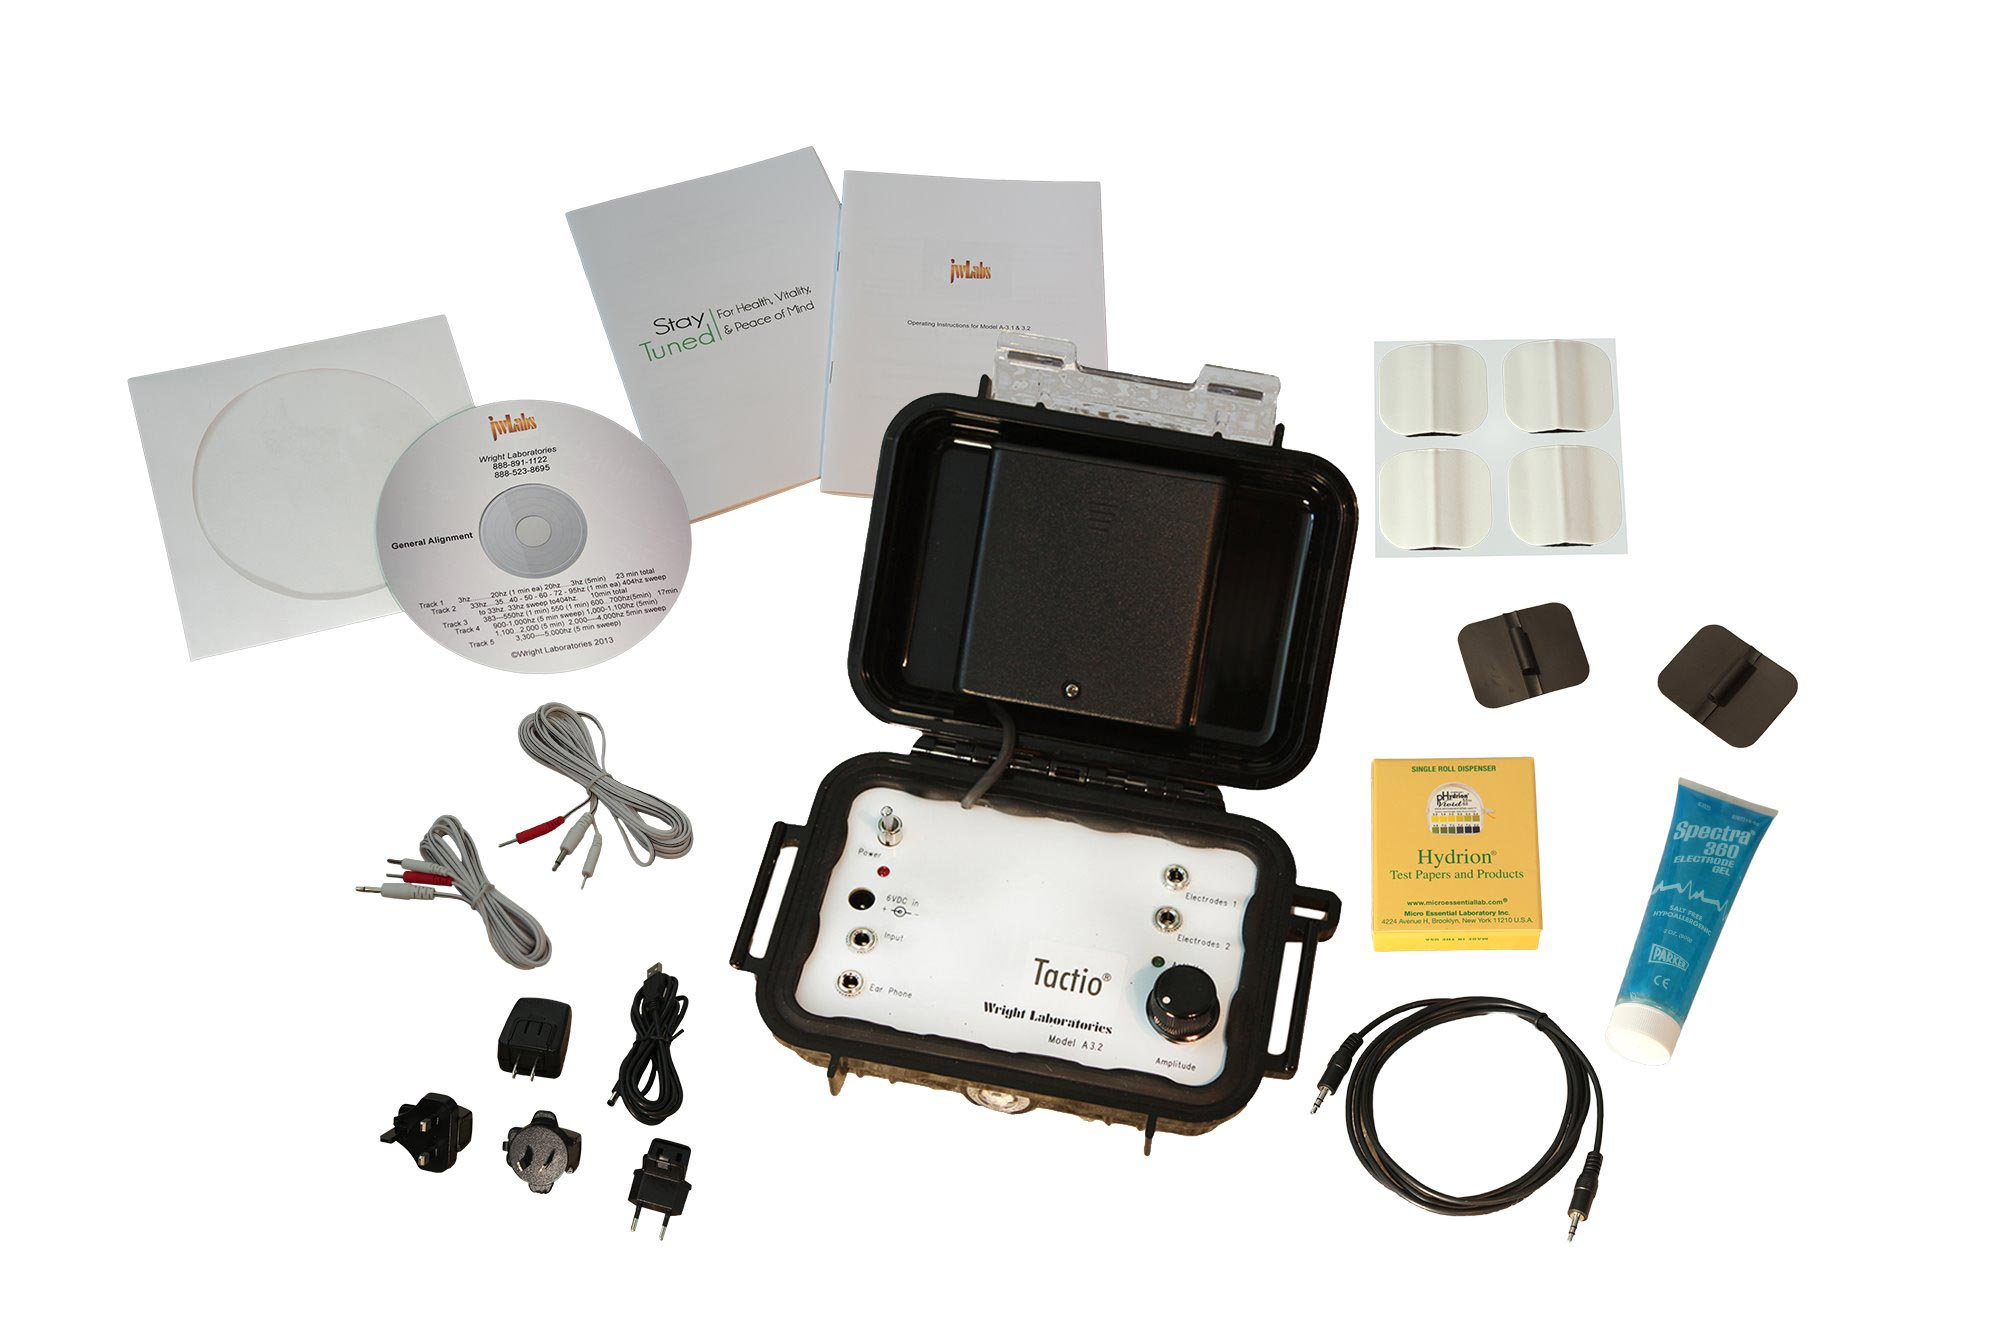 JWLABS' Model A-3 with start-up kit